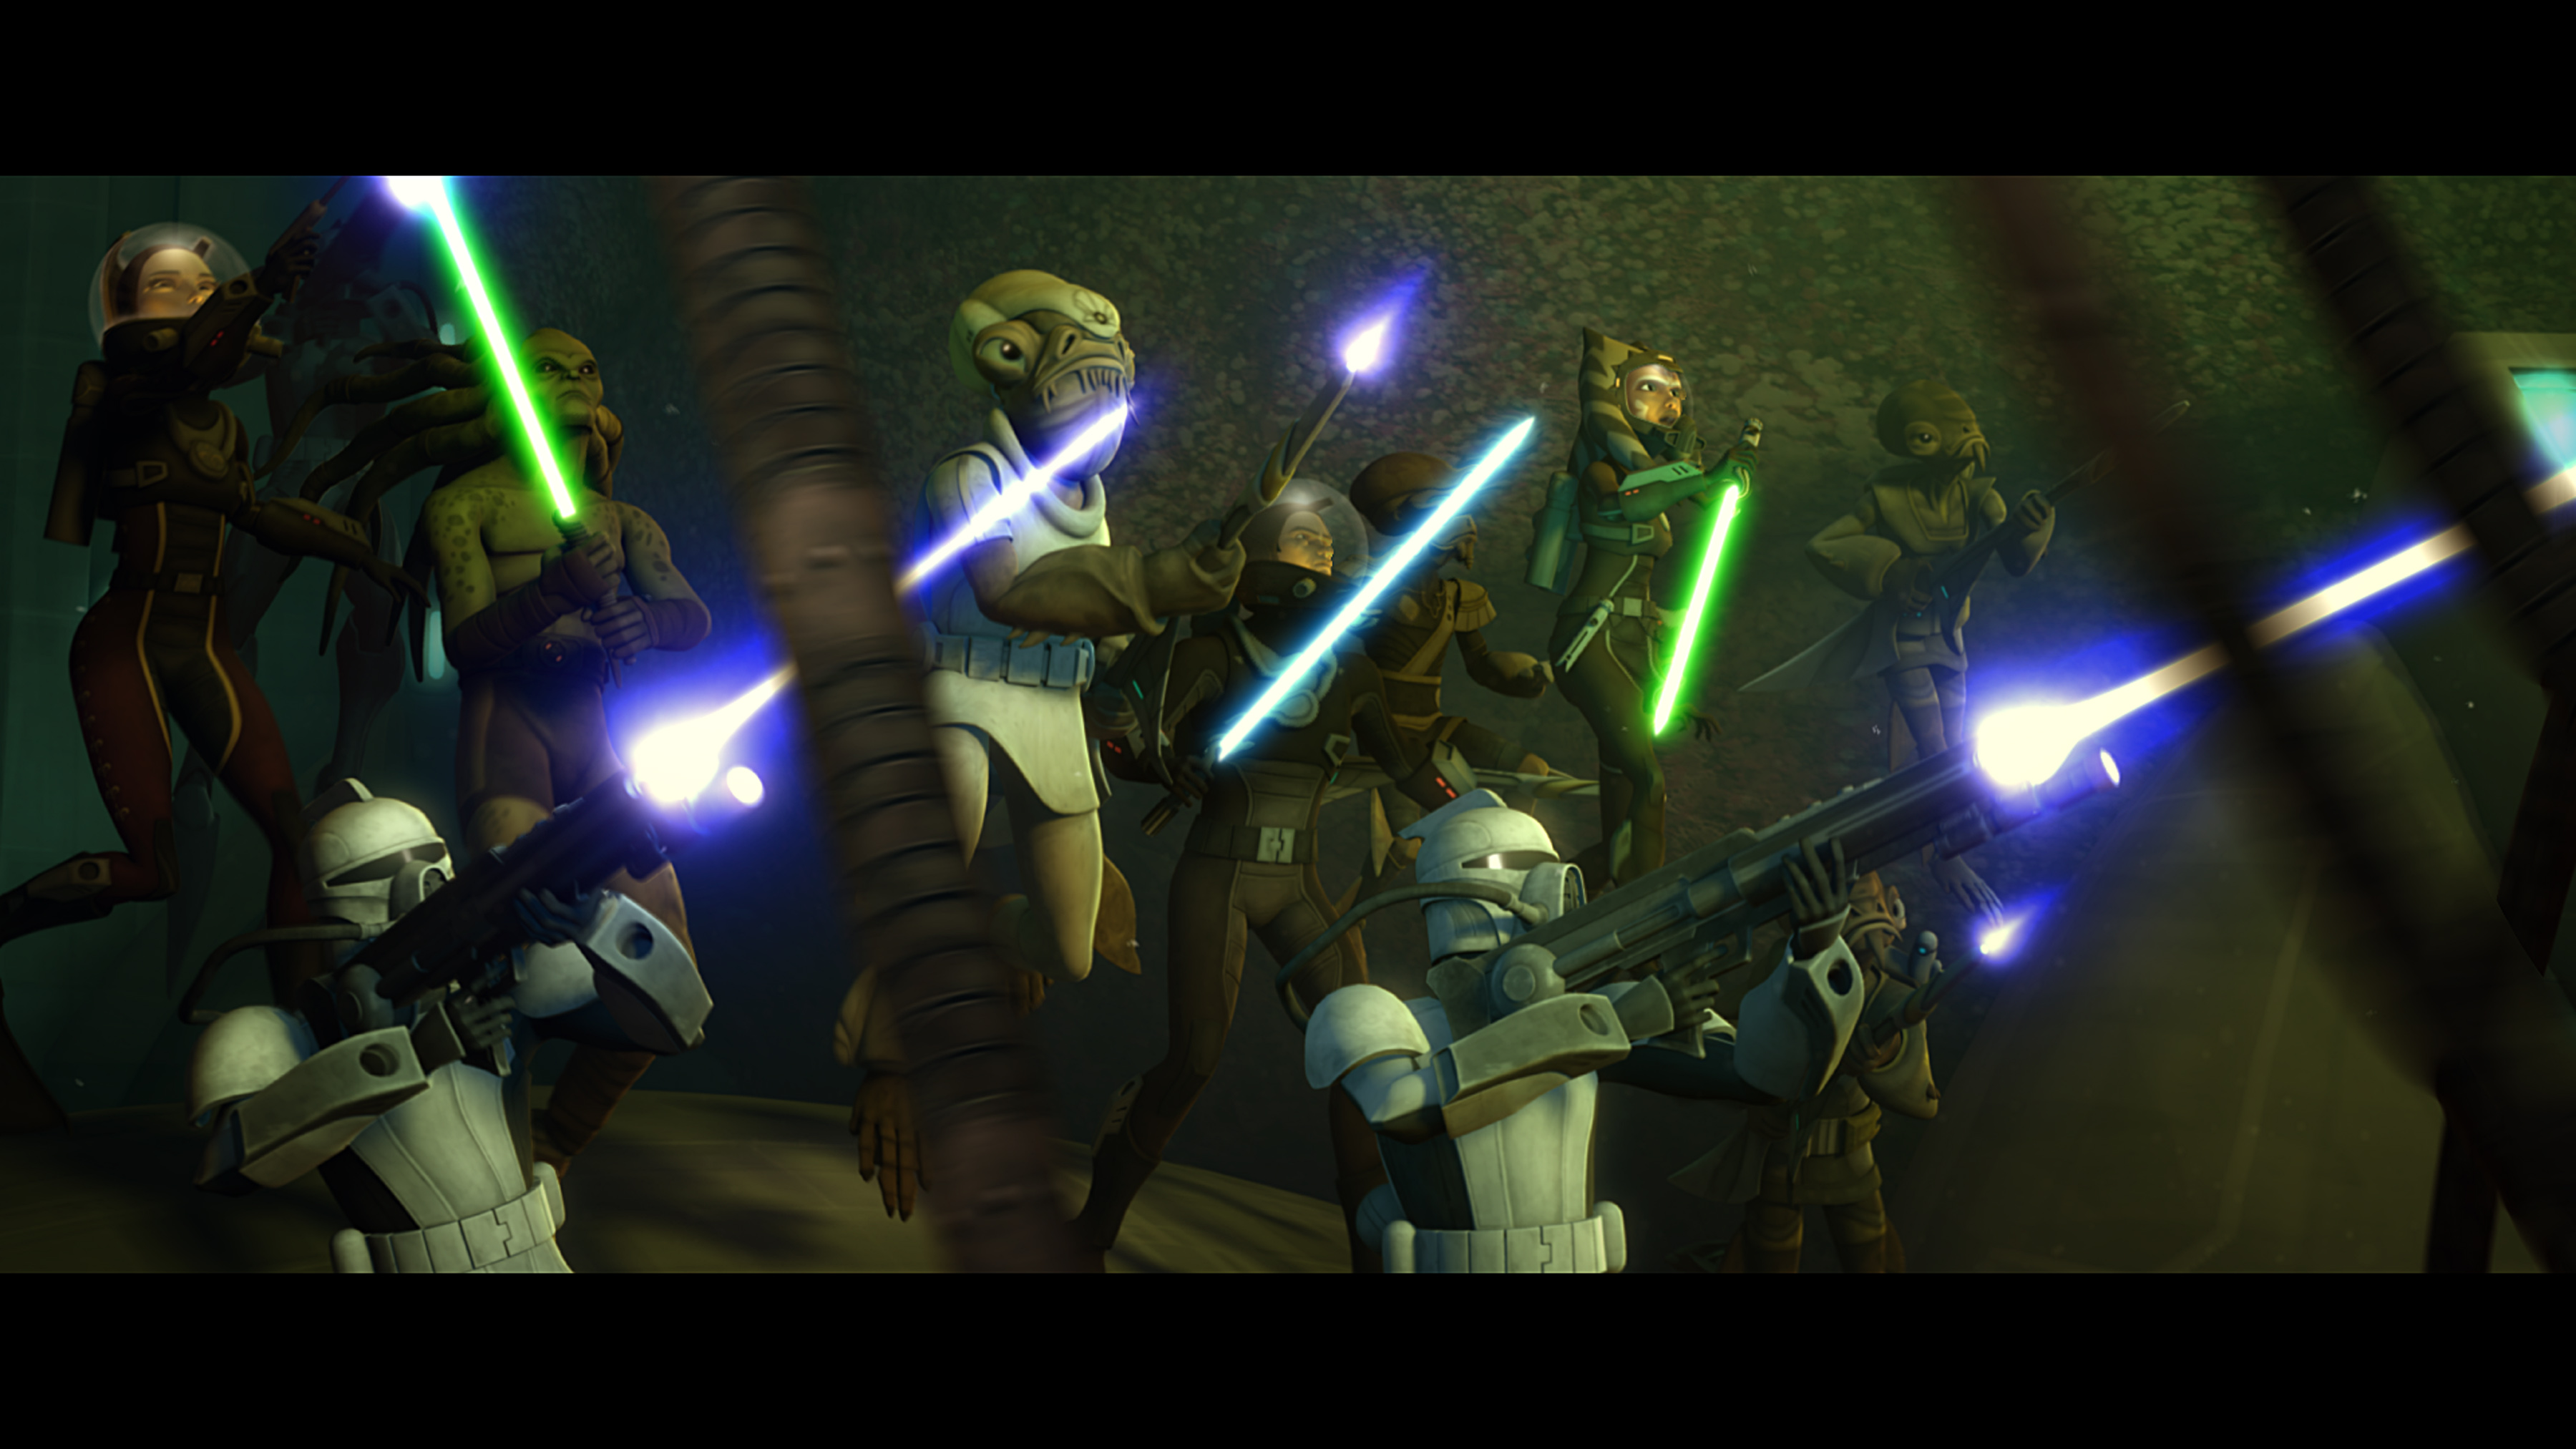 Star wars: the clone wars / lucasfilm animation